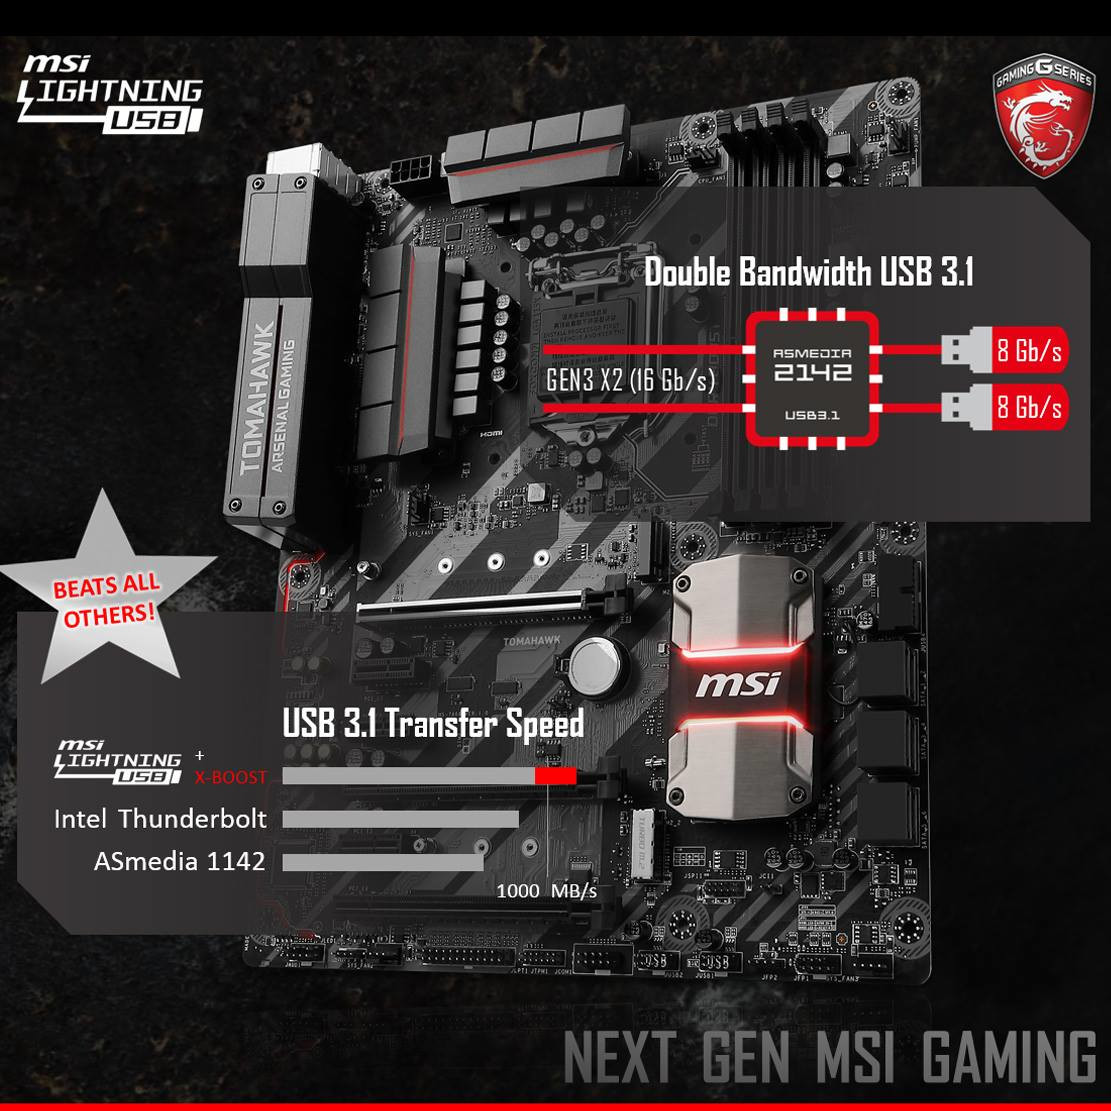 msi-z270-tomahawk-motherboard-with-lightning-usb